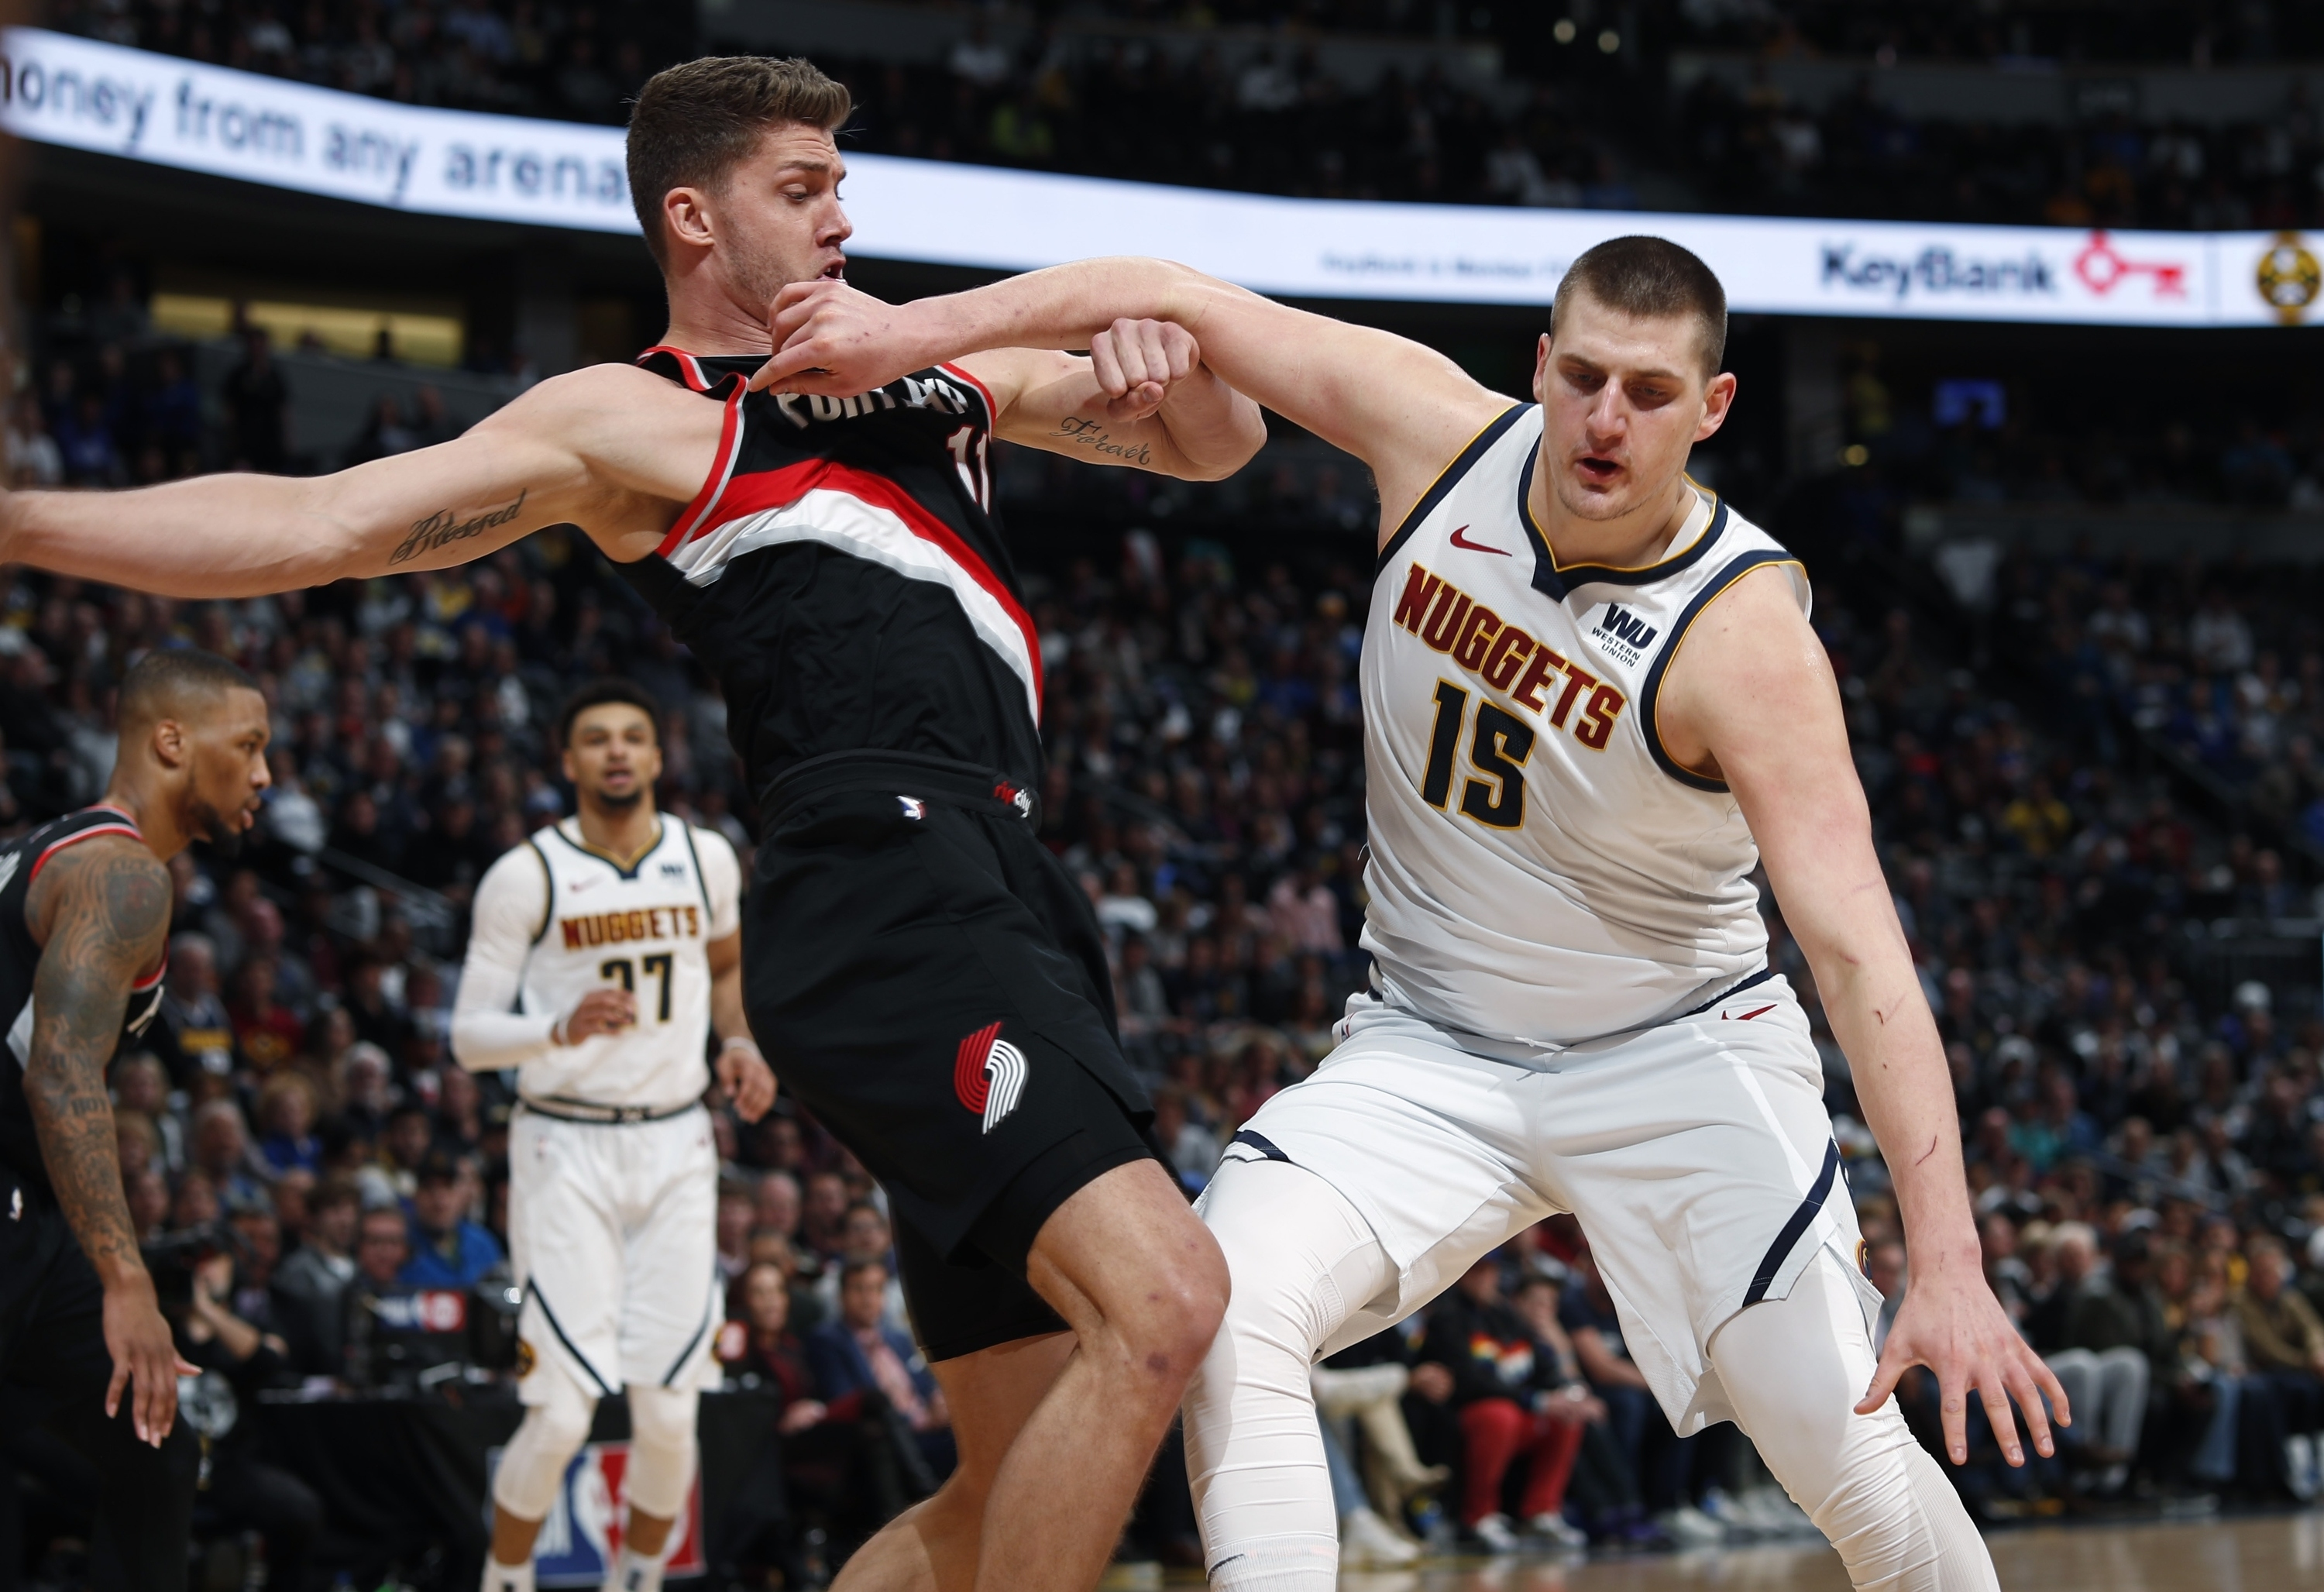 3adc0138e80f Jokic s 37 points leads Nuggets past Portland 121-113 - Sentinel ...